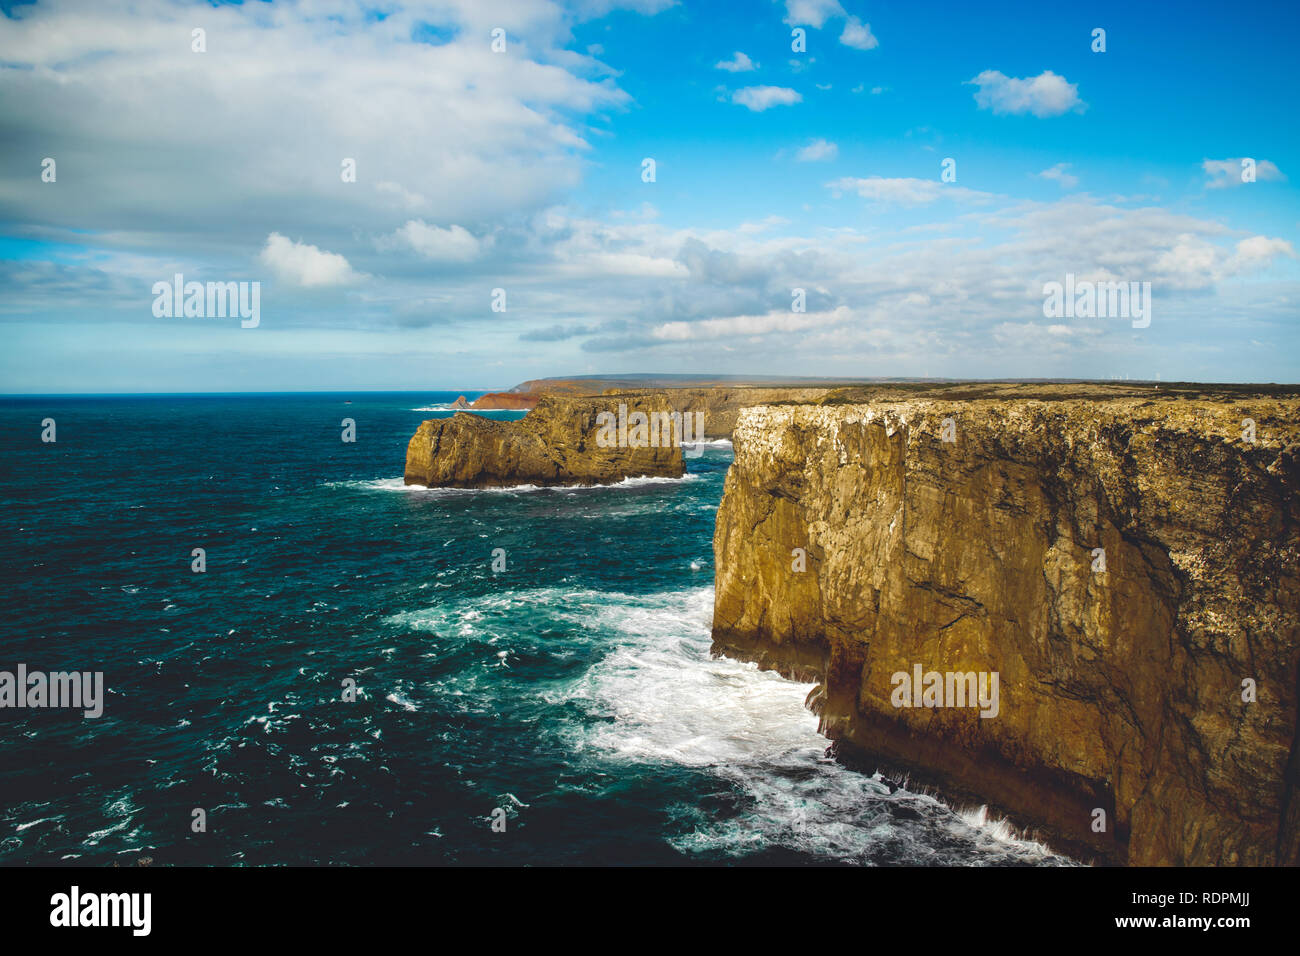 Sunny Cliffs in Portugal at the ocean Stock Photo